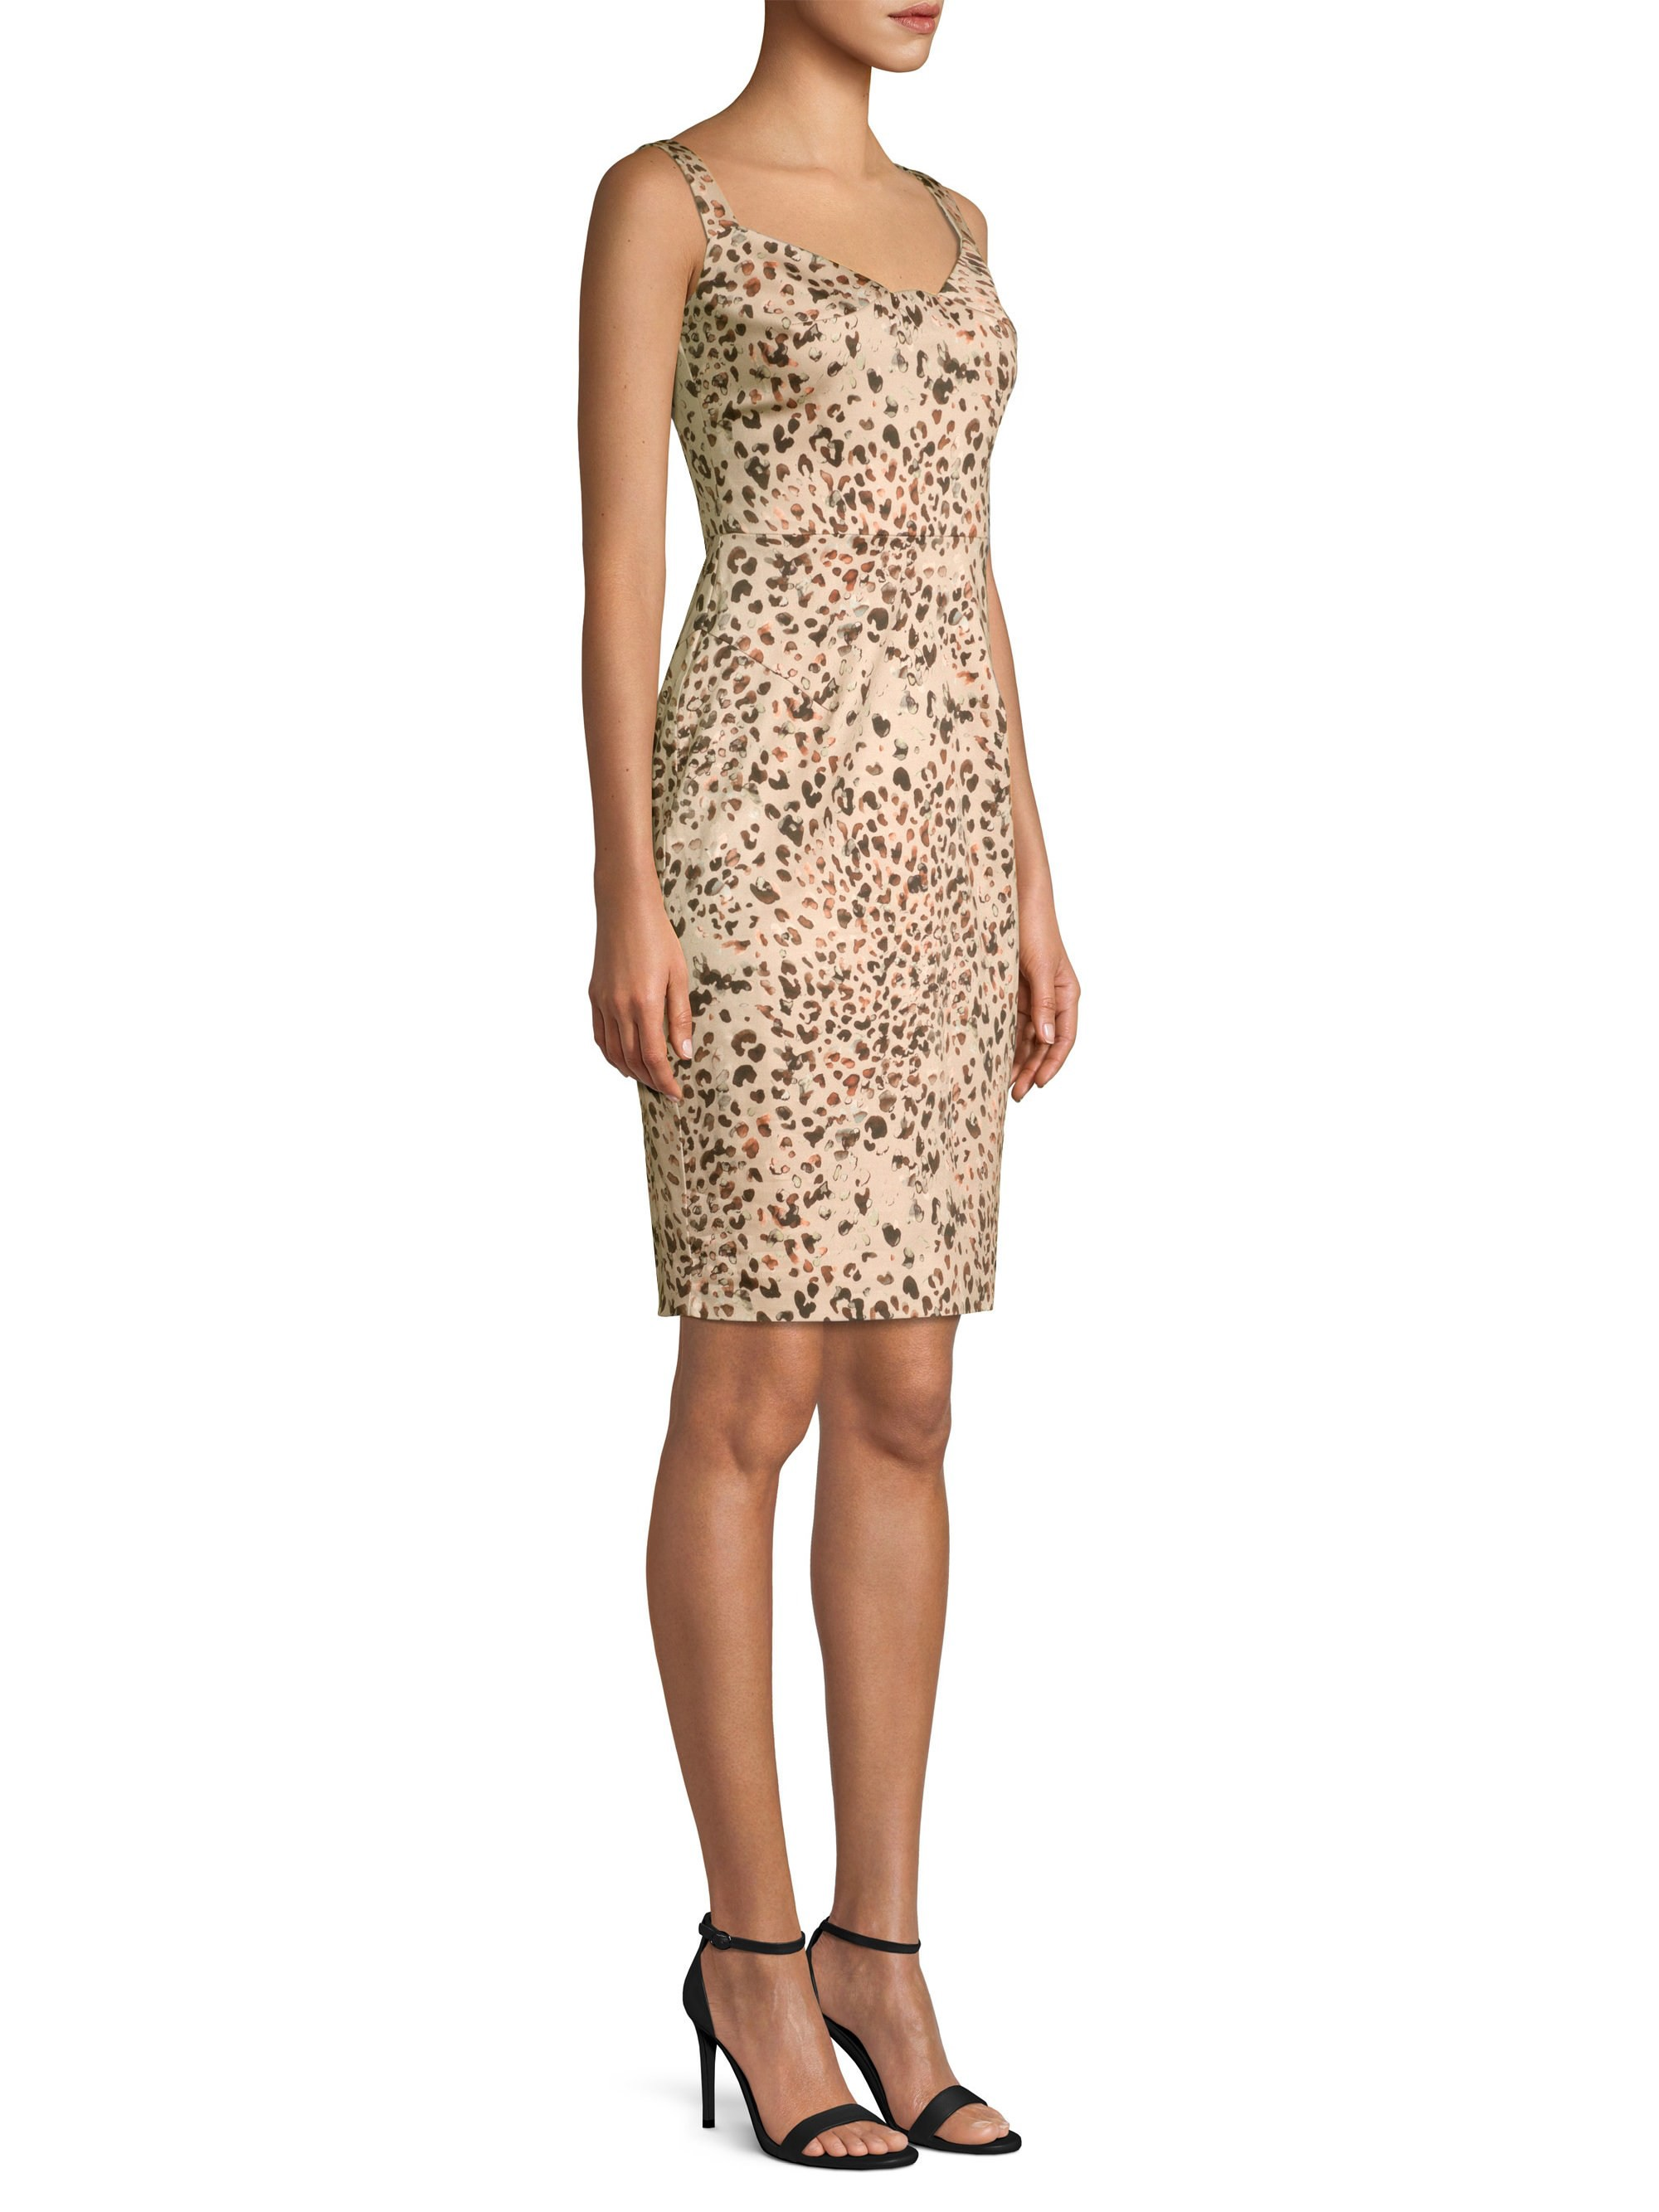 41cb0e44c2 Vista Leopard Print Sheath Dress by Black Halo in 2018